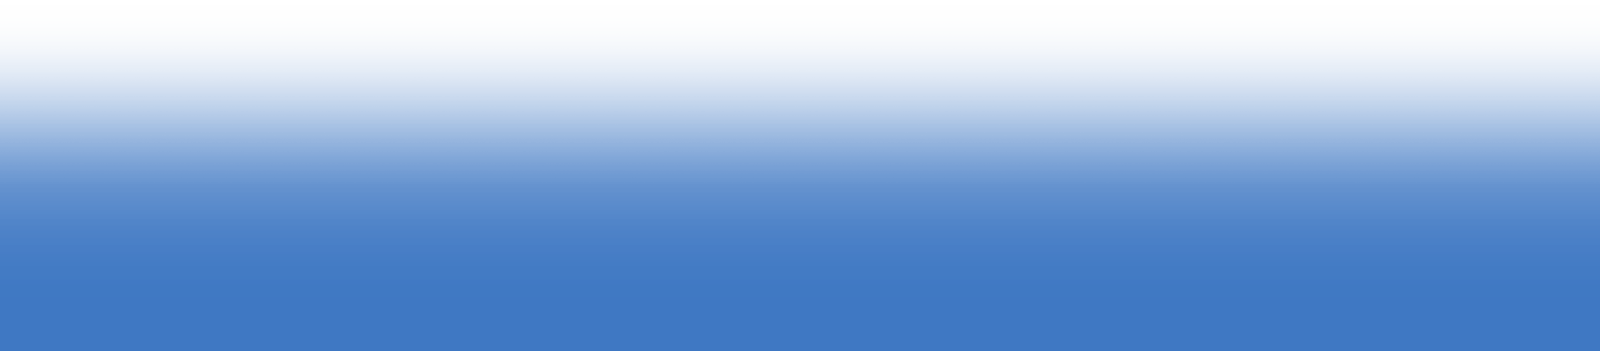 Download Ombre White And Blue Background Png Image With No